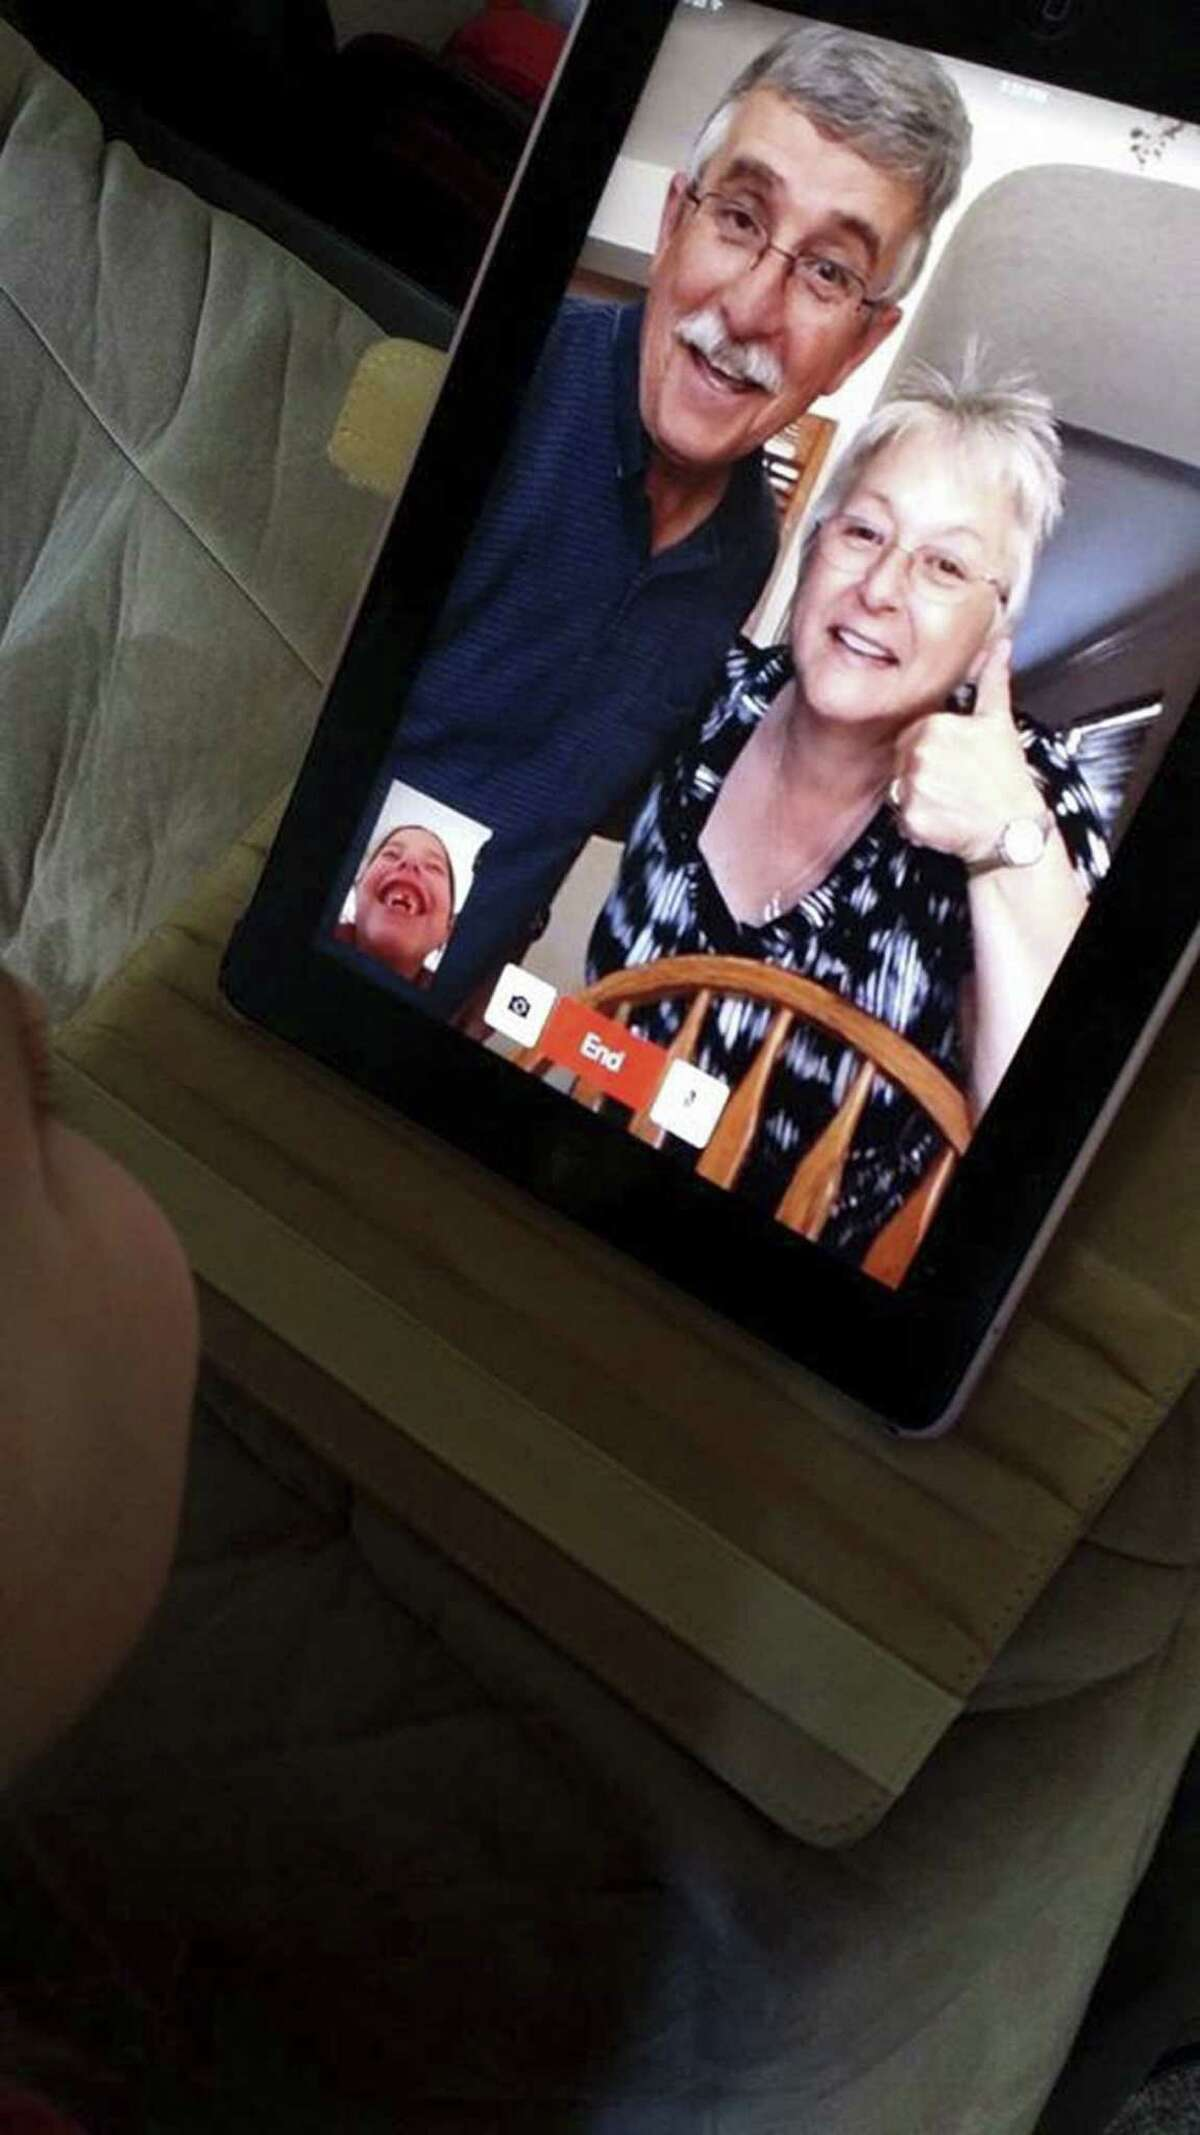 When Erin Fuller of Seattle was about to lose a tooth, she connected with grandparents John and Robin White, in San Antonio, on FaceTime for a little advice.